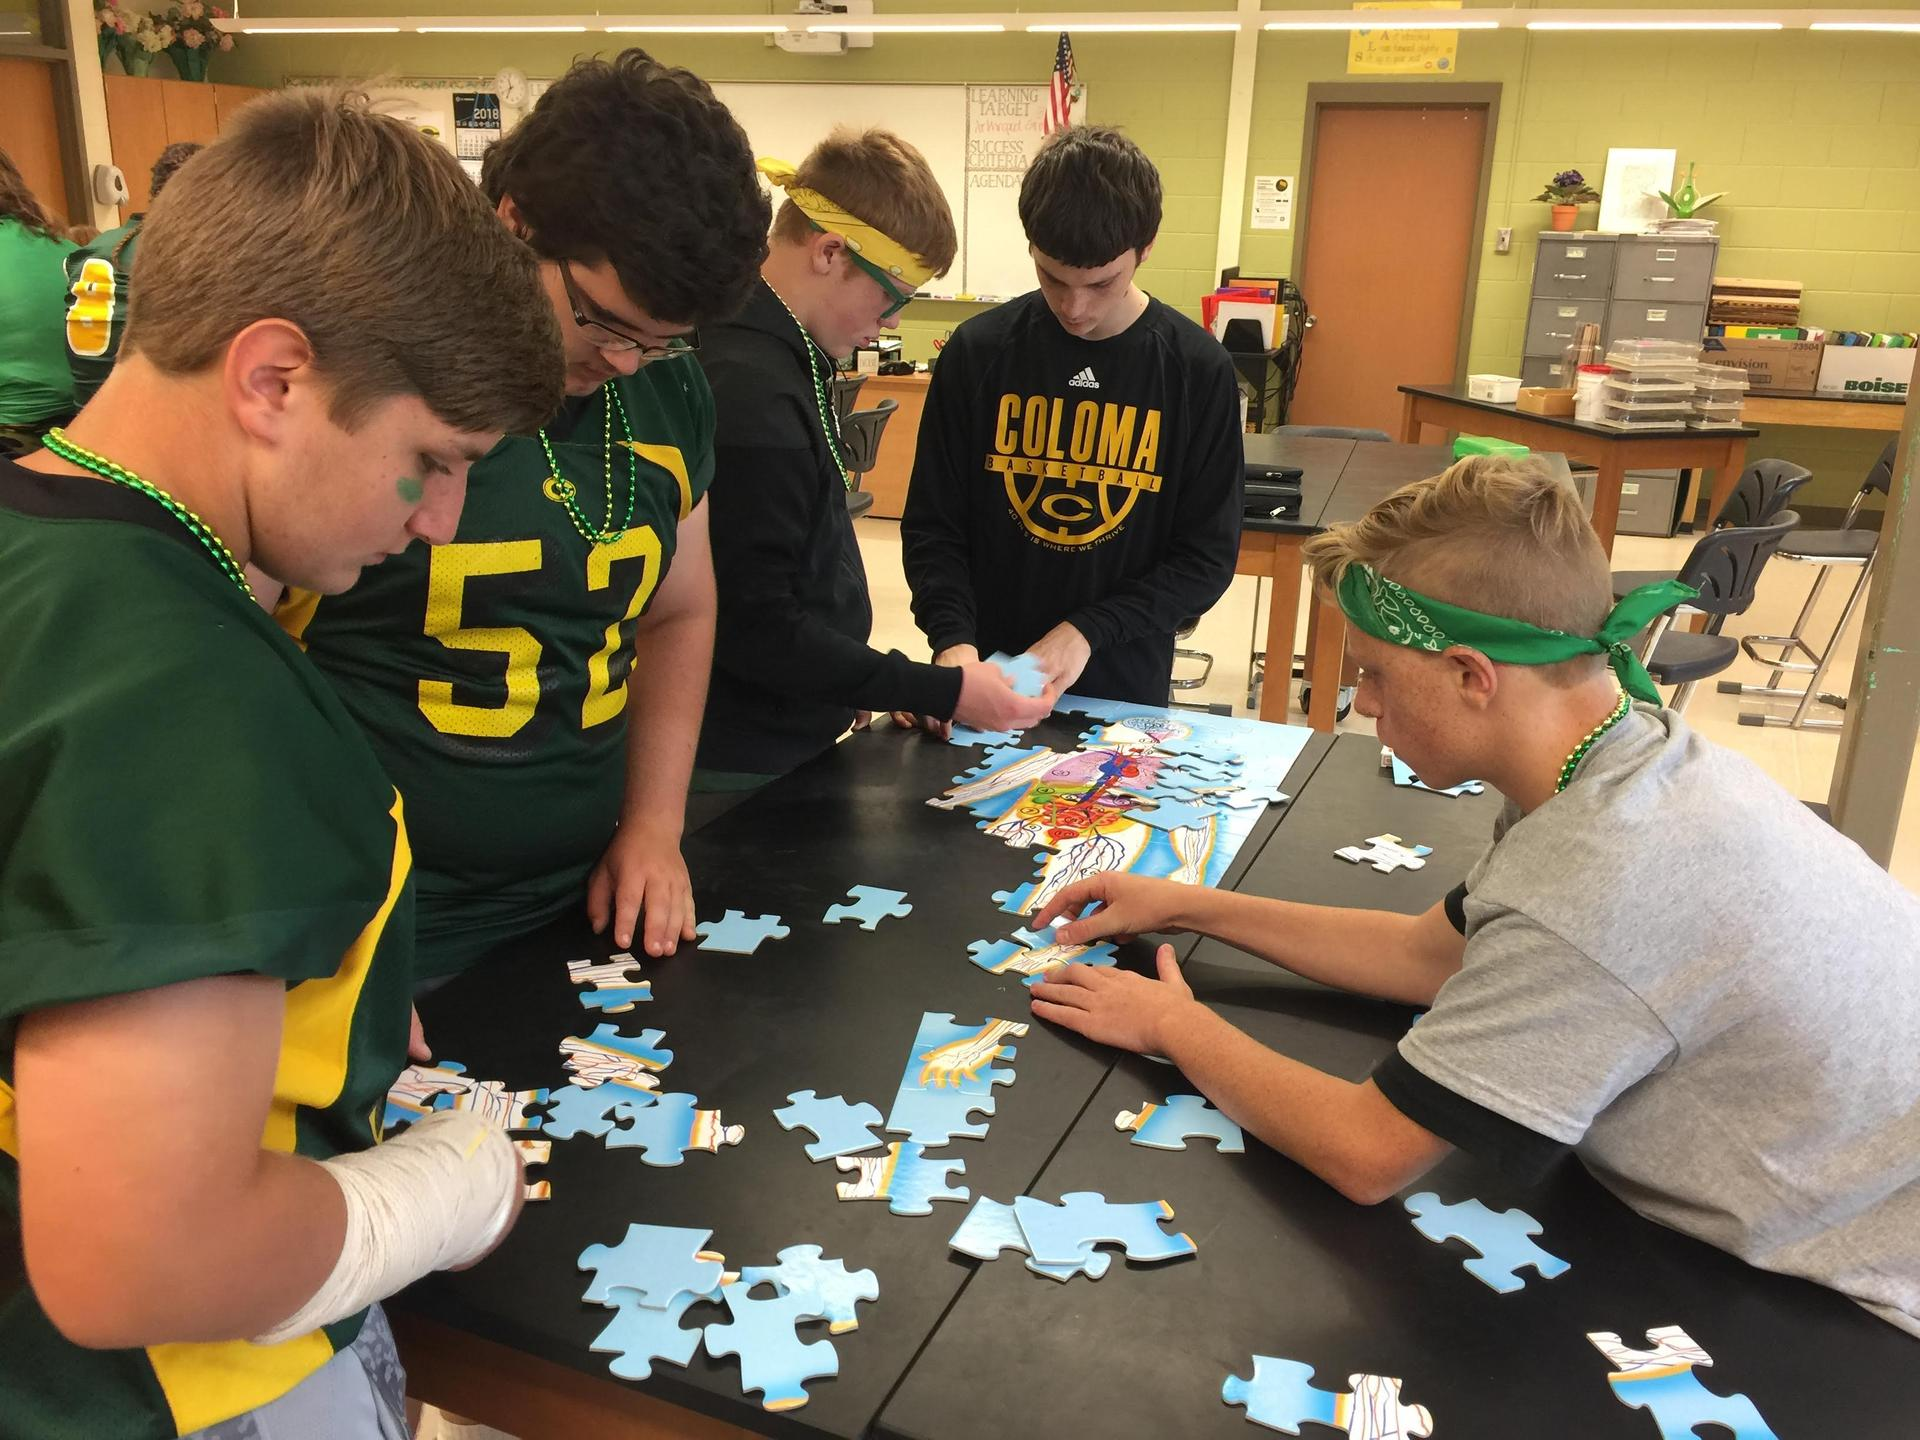 Puzzling times in biology class!